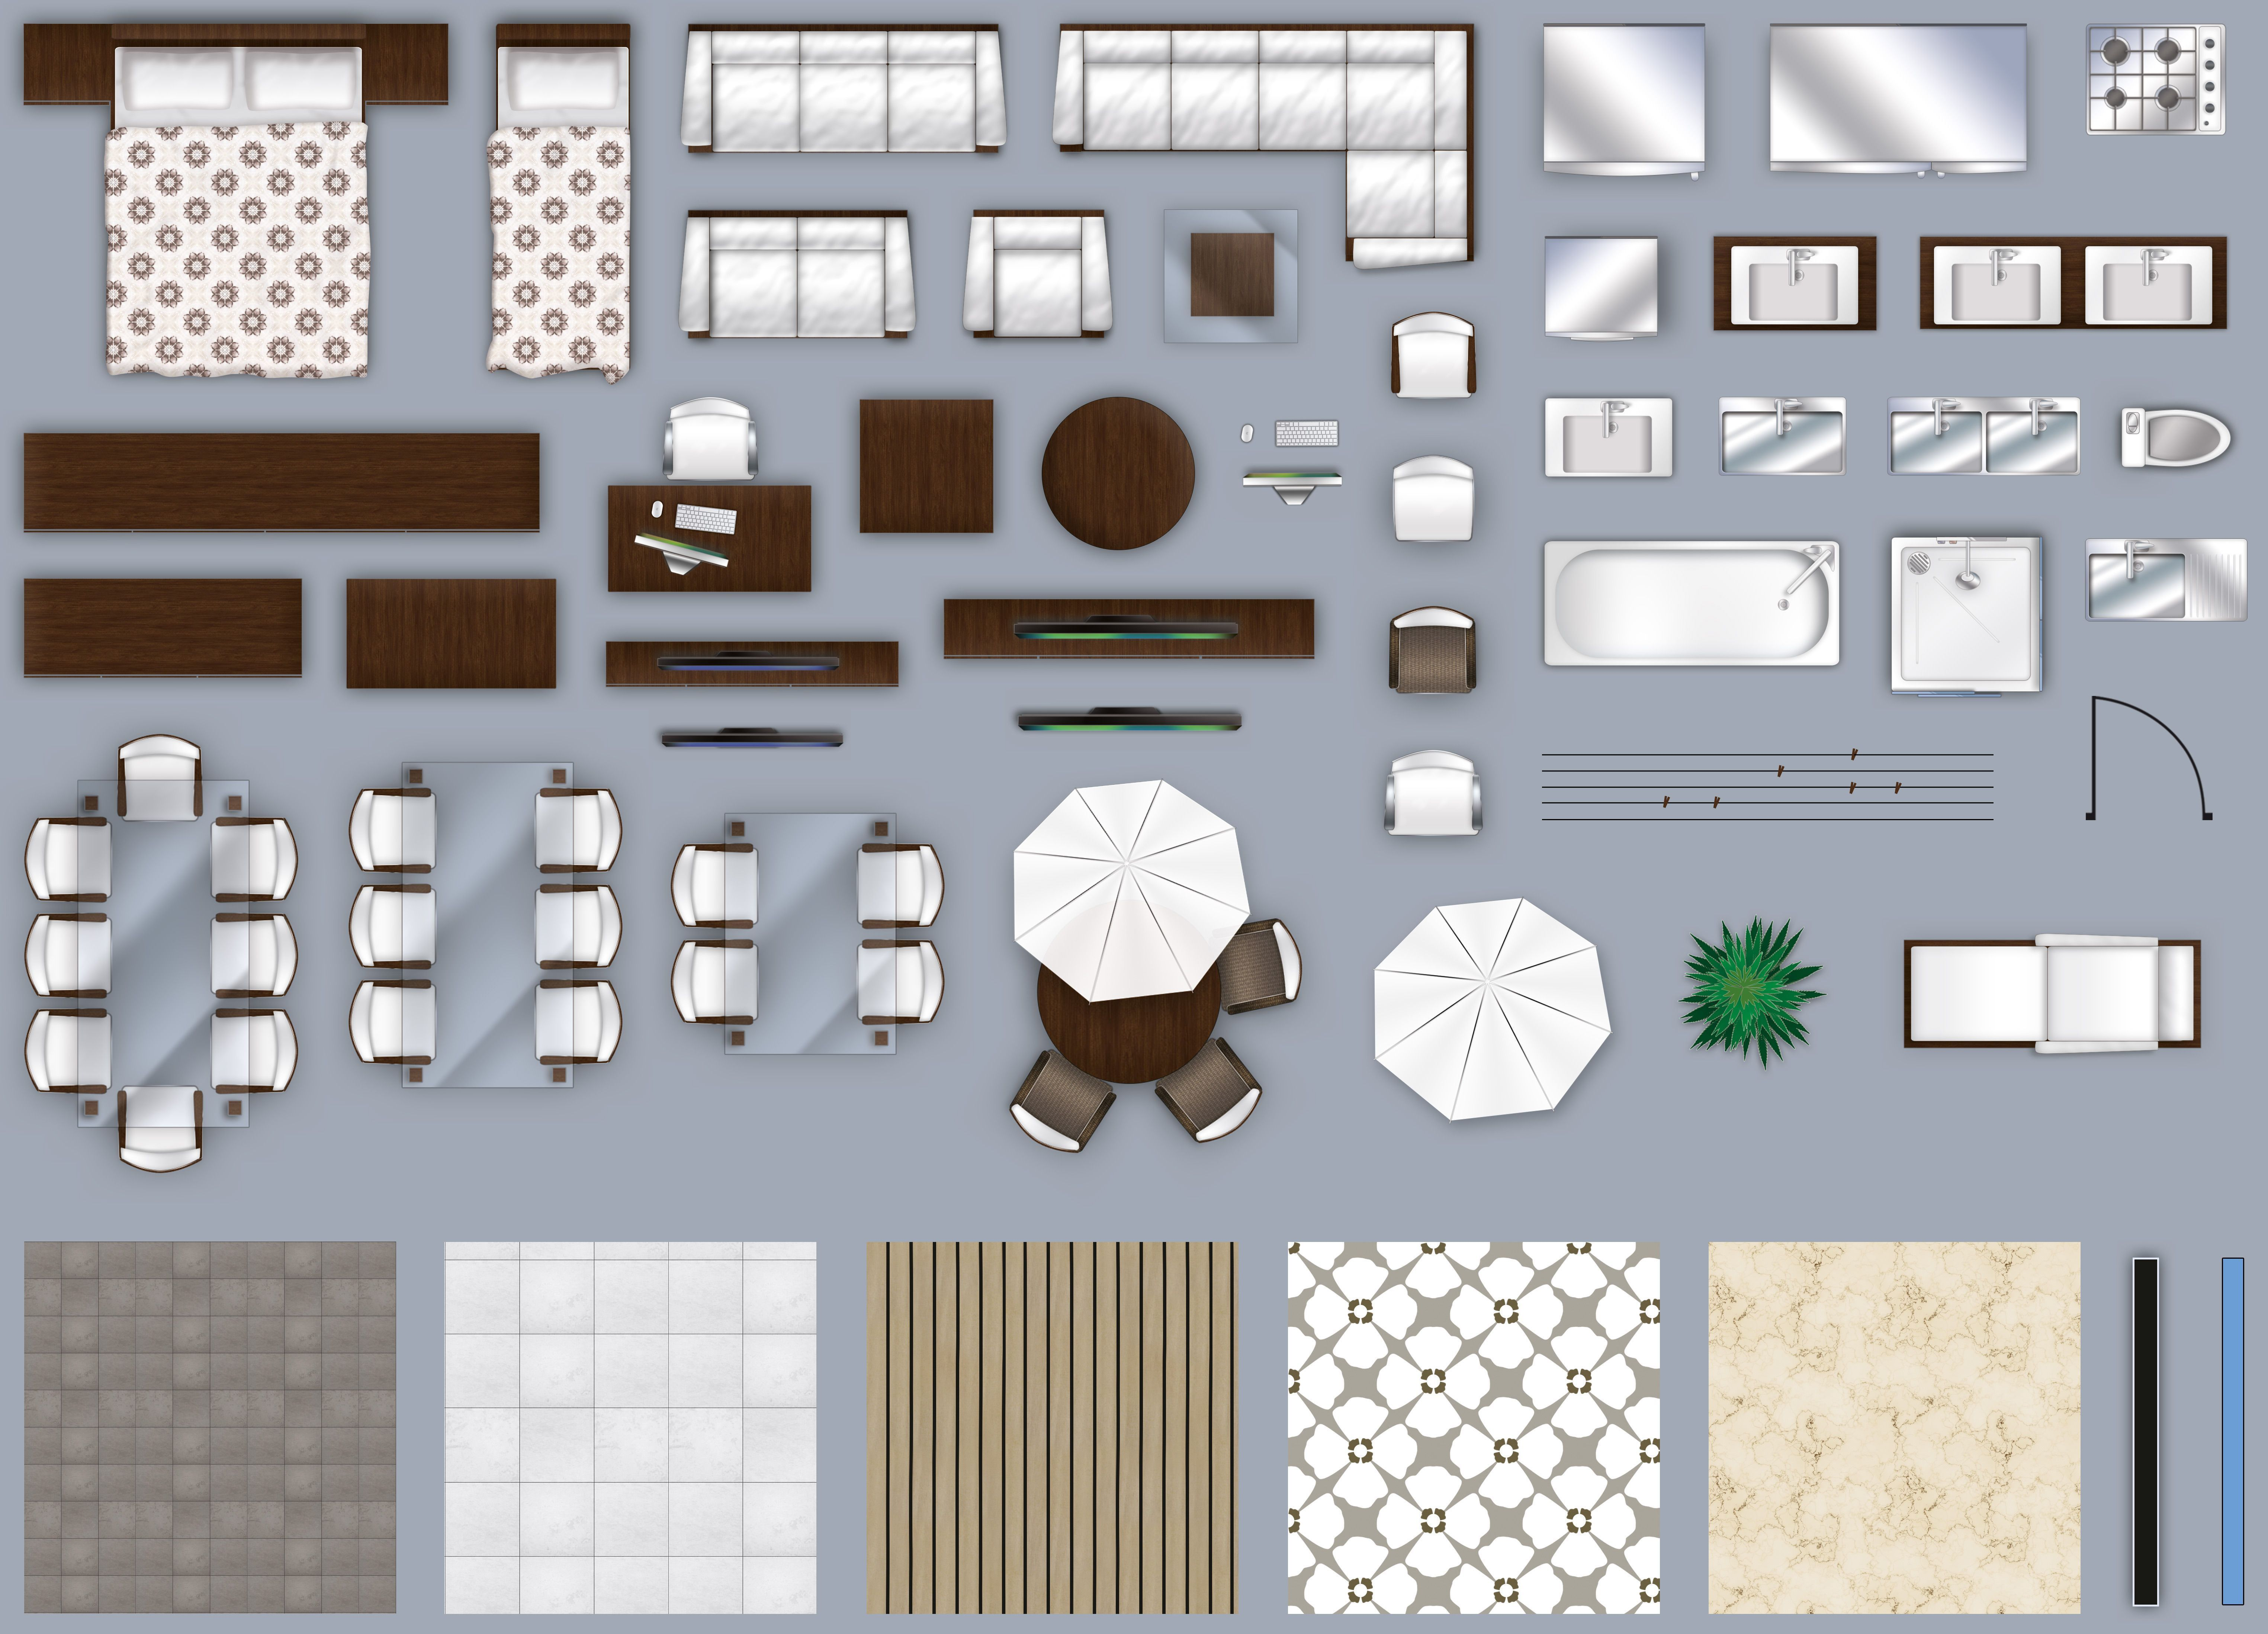 Pin By Semapop Furniture On Furniture Bedroom Furniture Layout Living Room Furniture Layout Office Furniture Design Living room layout templates